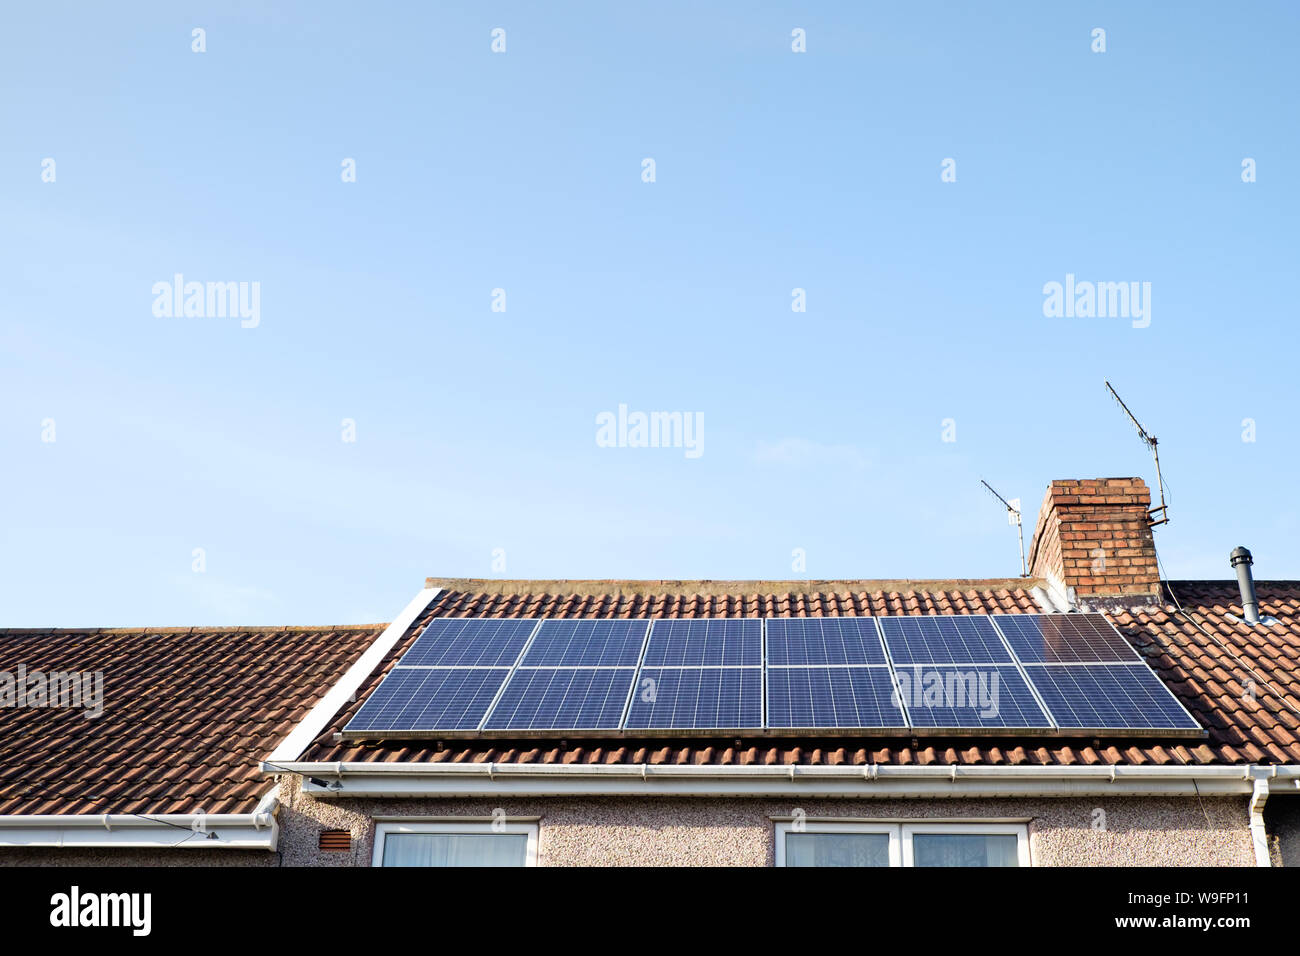 Rooftop solar panels generating renewable energy on a sunny day in Bristol, England, UK. Stock Photo